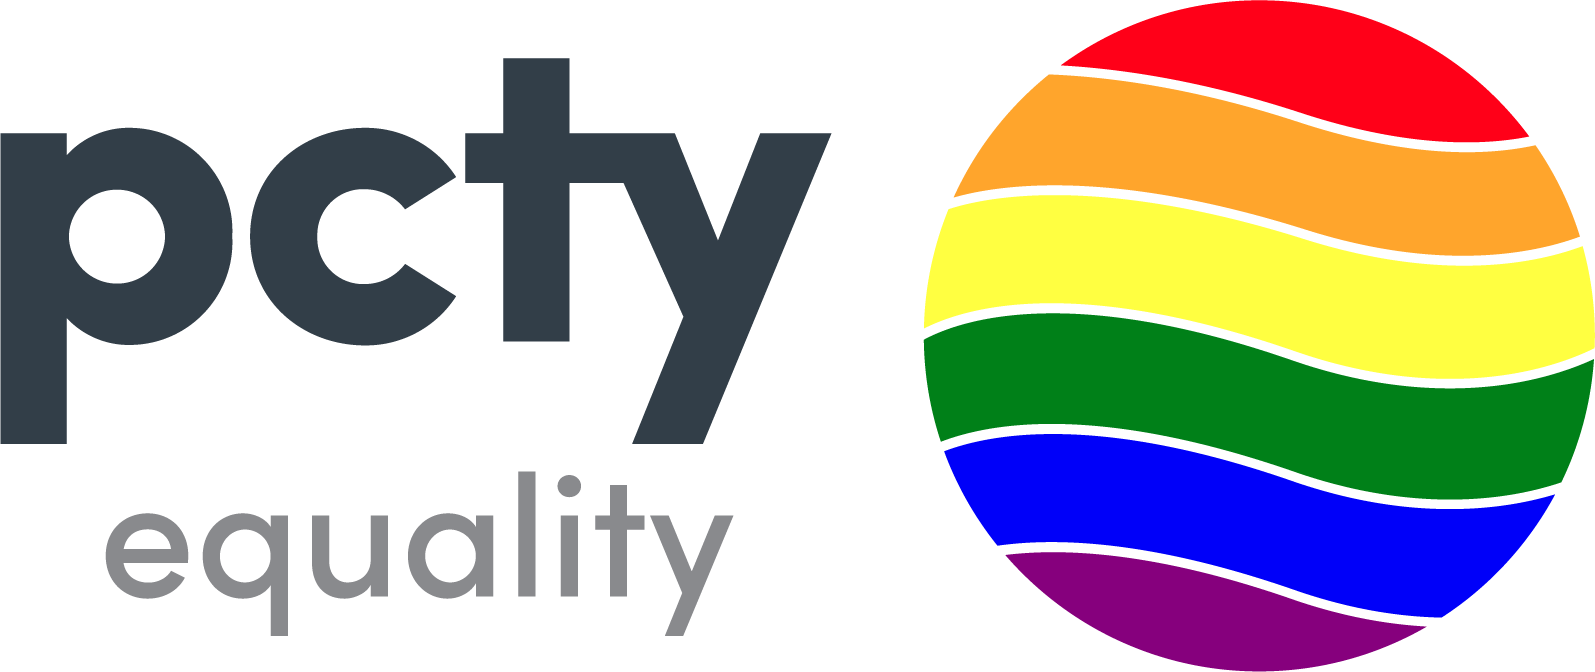 PCTY Equality